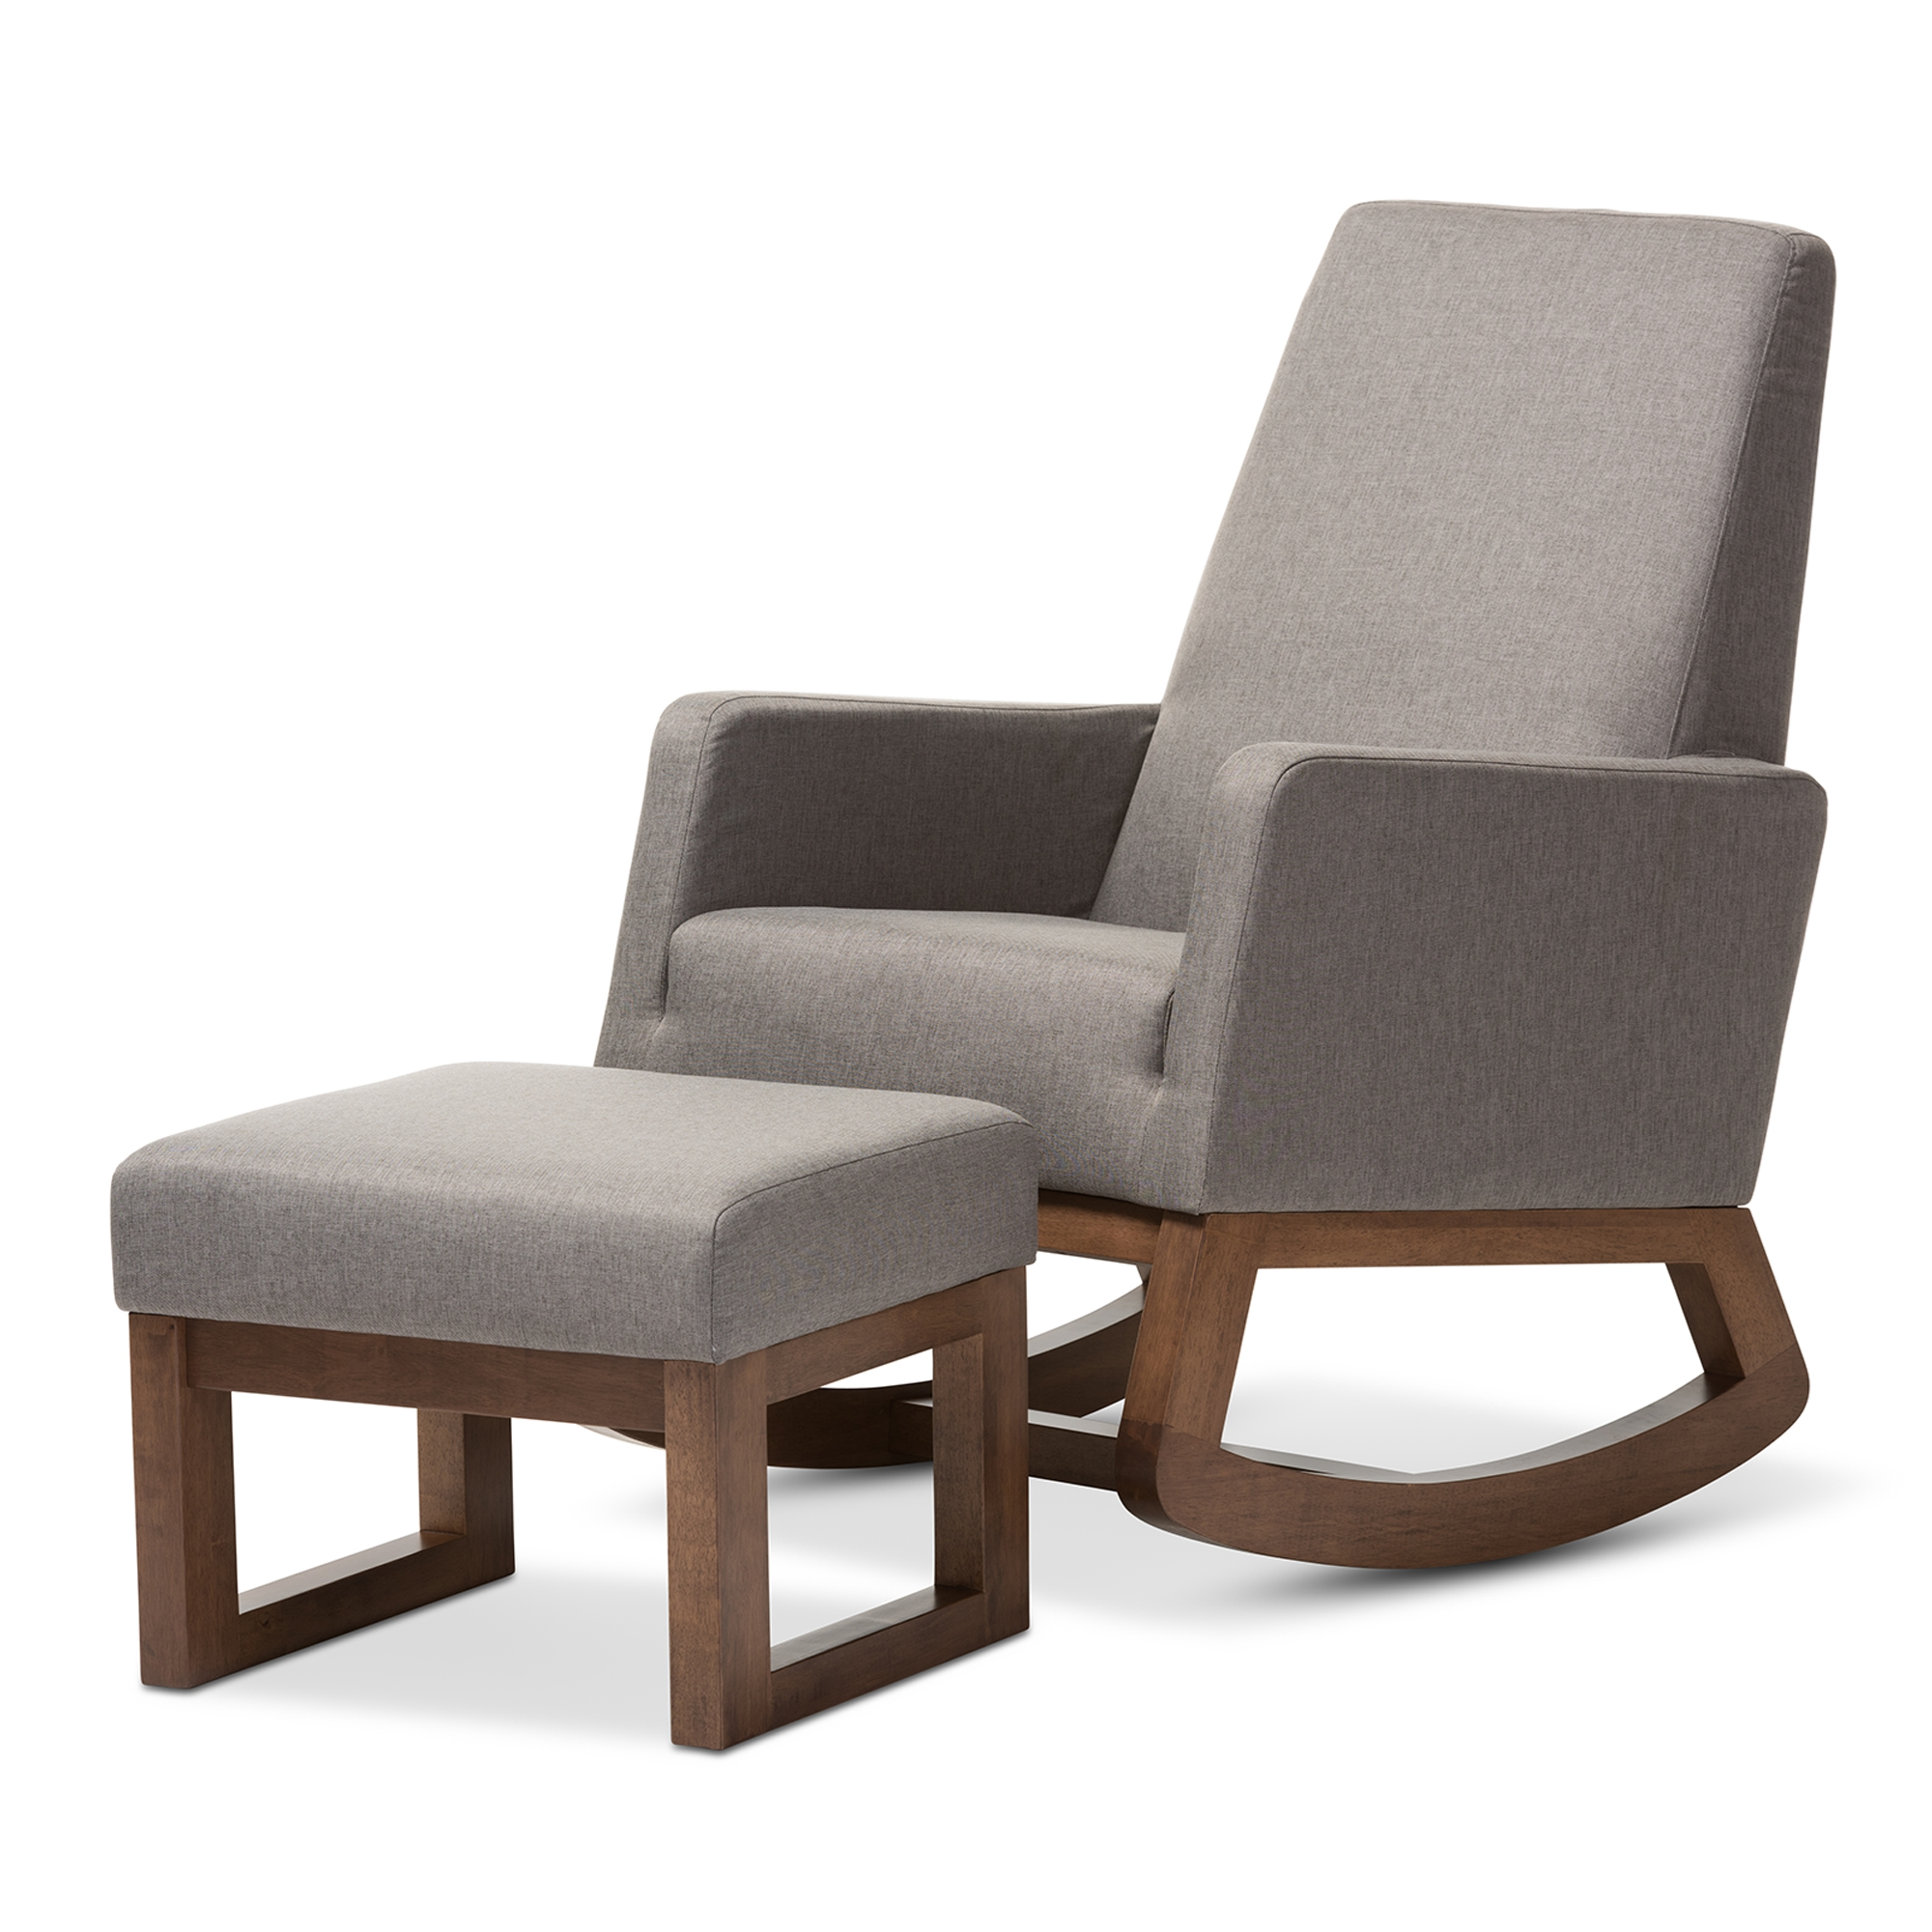 Beau Baxton Studio Yashiya Mid Century Retro Modern Grey Fabric Upholstered  Rocking Chair And Ottoman Set ...